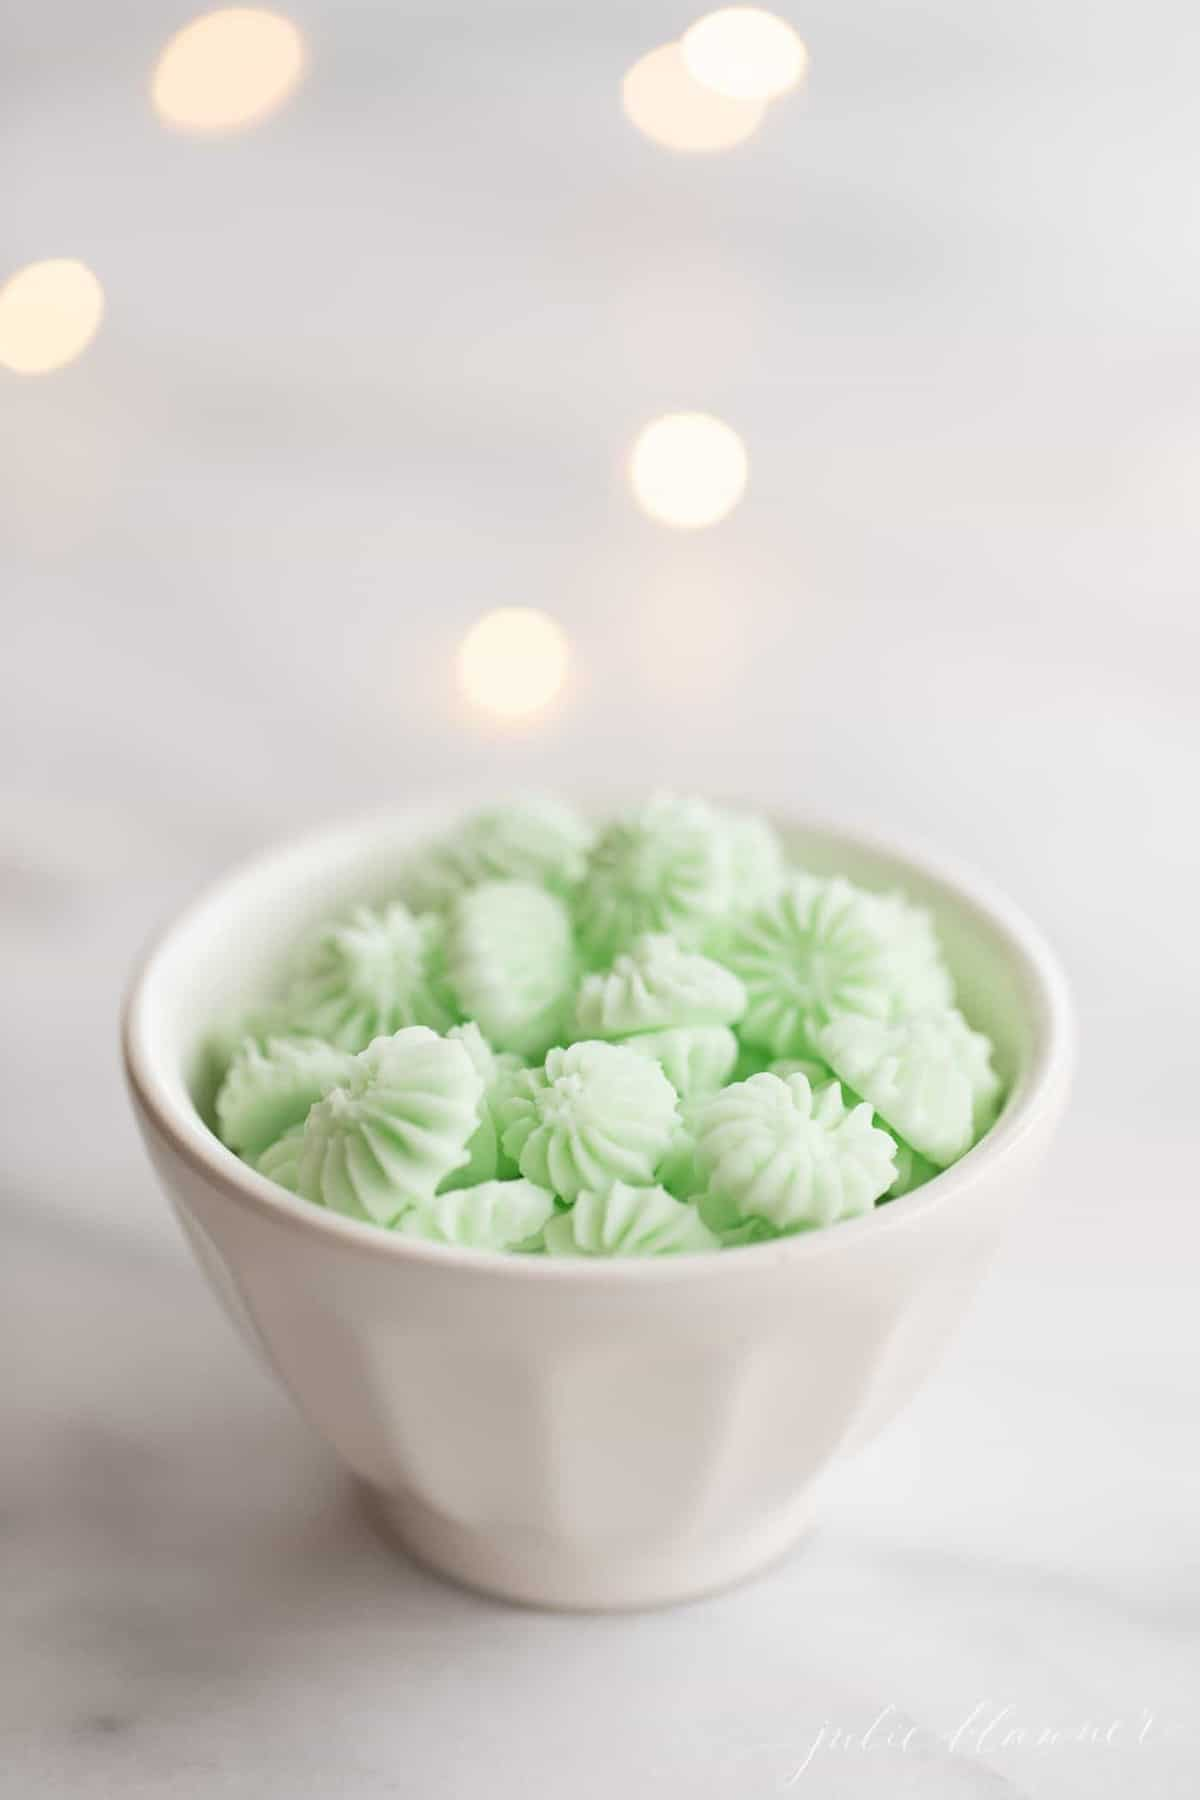 Green cream cheese mints in a small white bowl